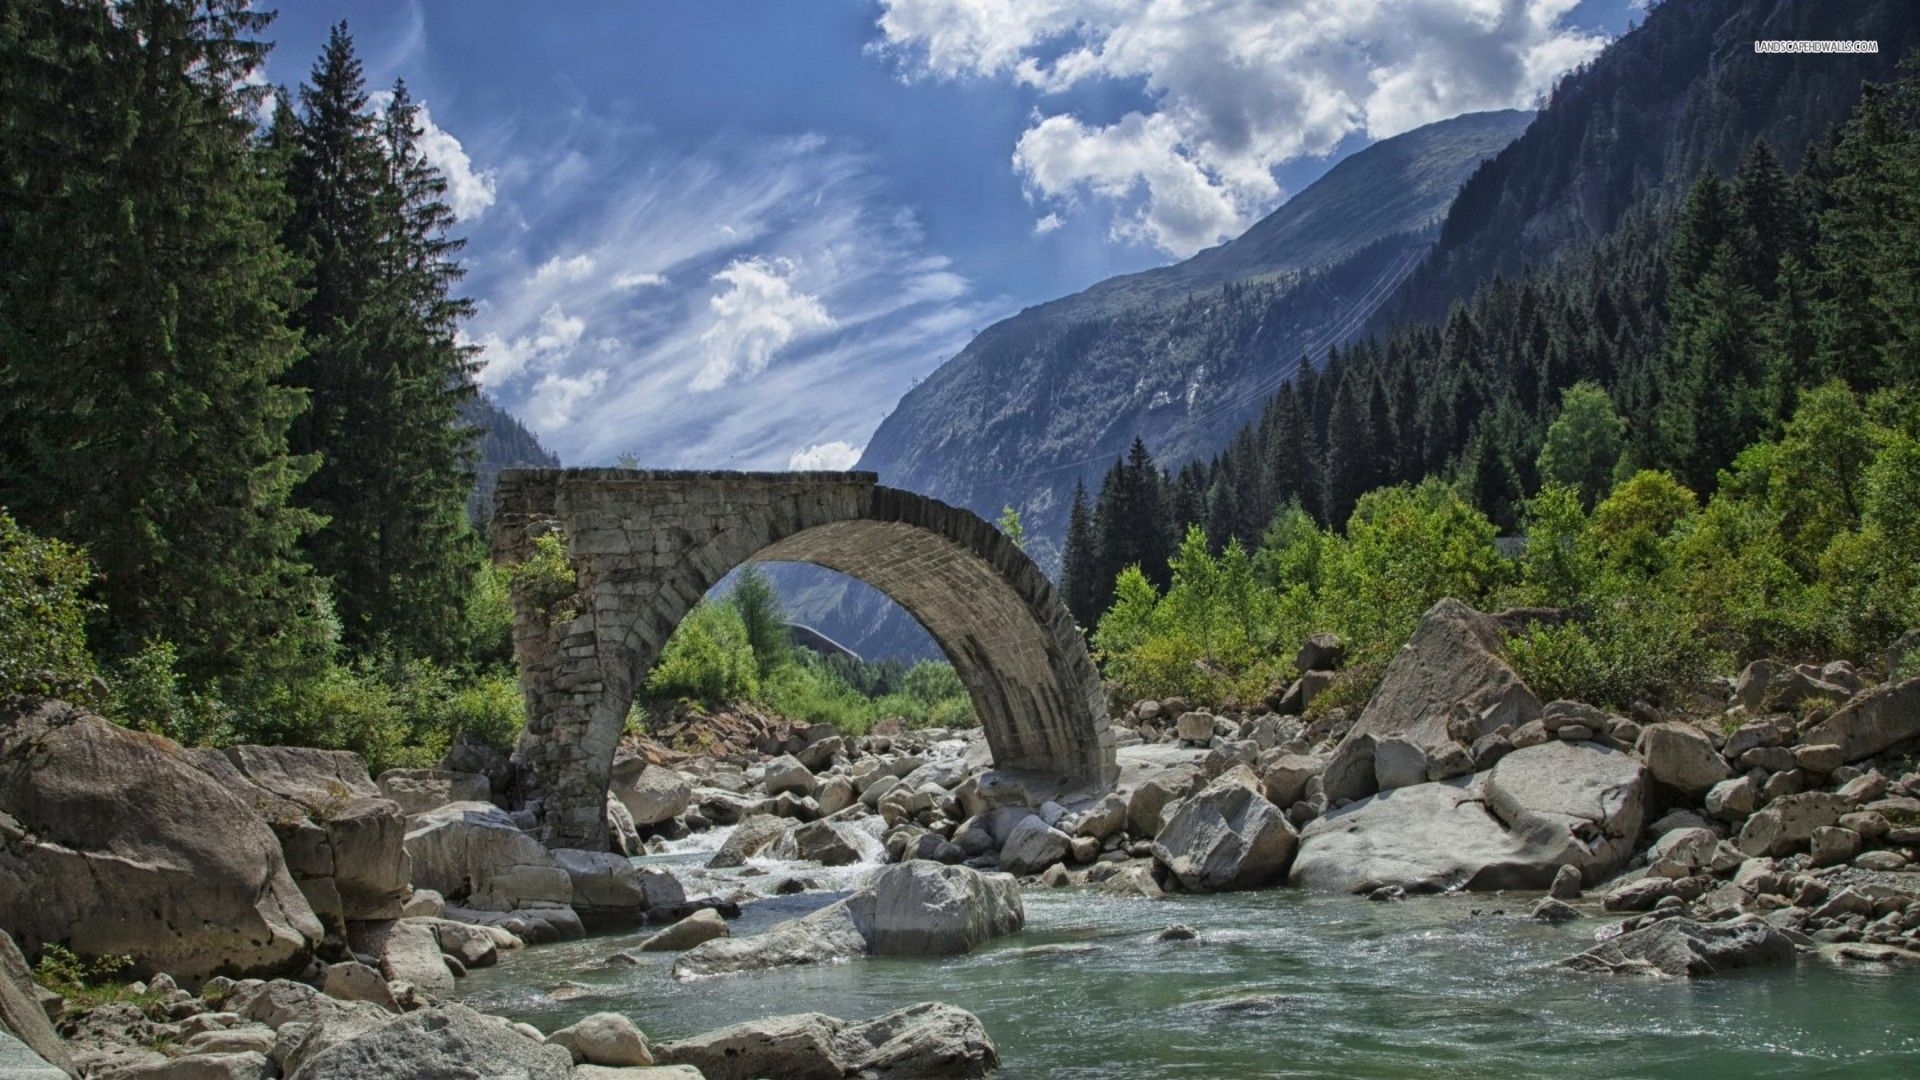 Bridge ruins in the valley 5330 1920x1080